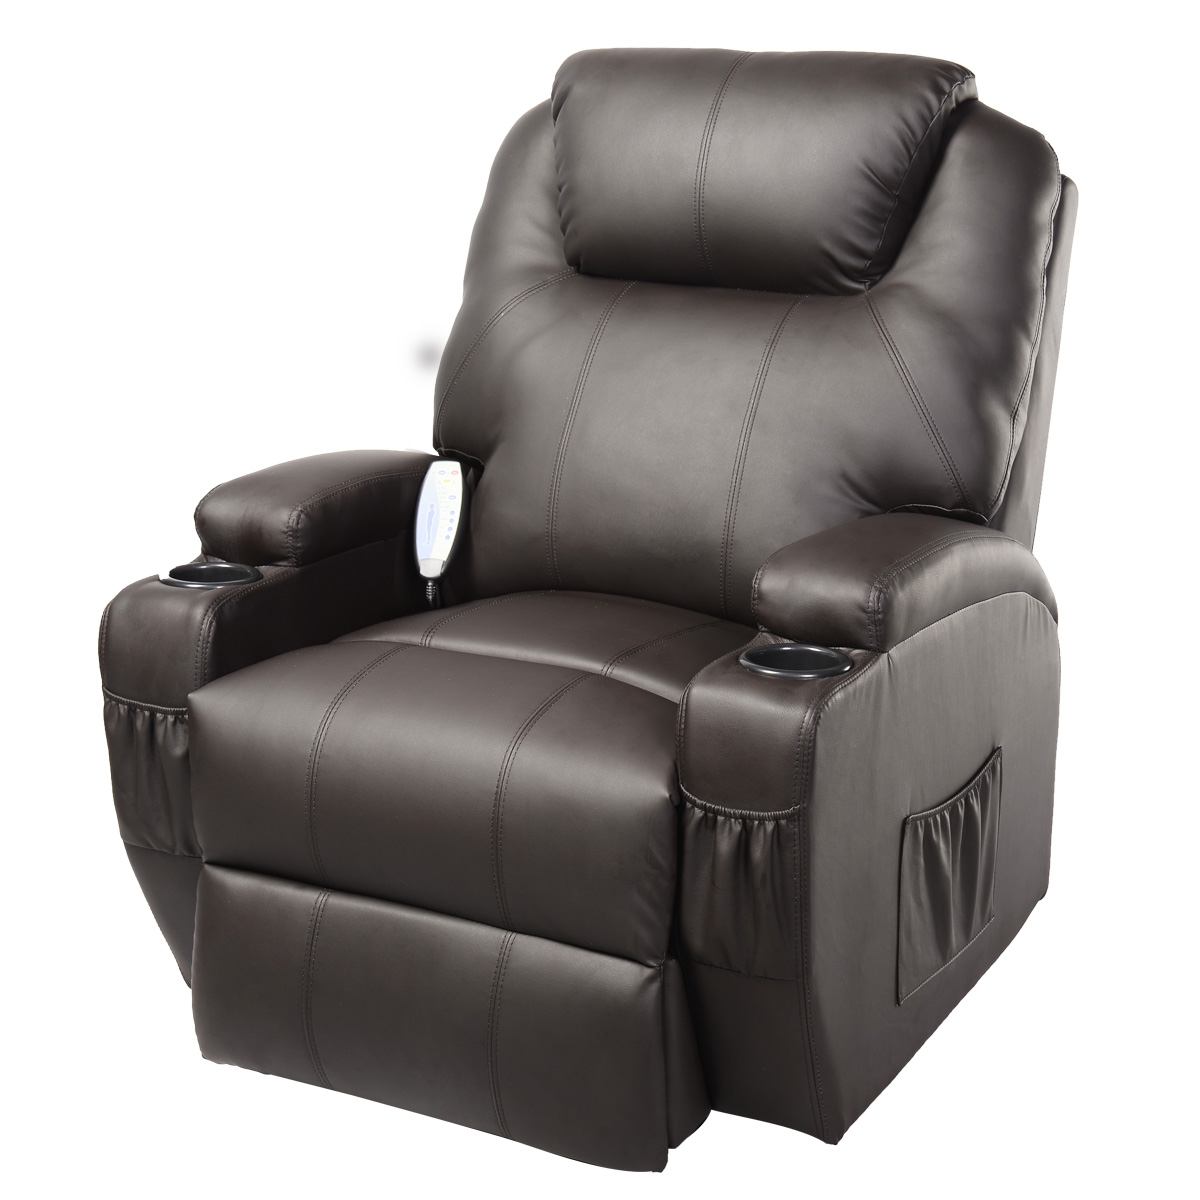 Costway Ergonomic Deluxe Massage Recliner Sofa Chair Lounge Throughout Sofa Chair Recliner (Image 7 of 15)